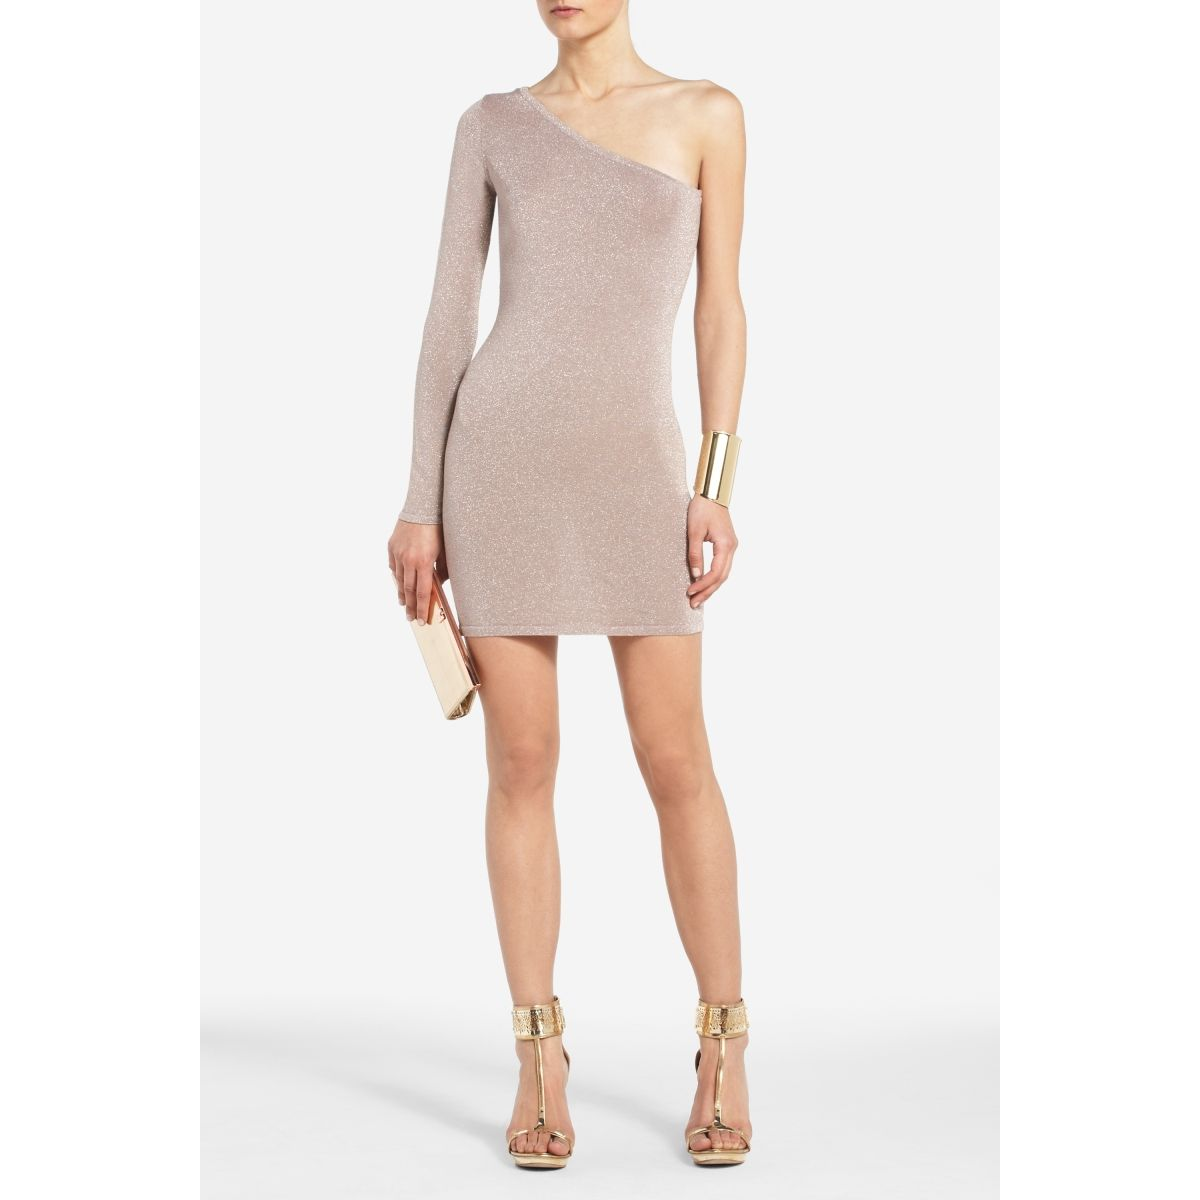 Skin tone one shoulder cocktail dress.  Hot.